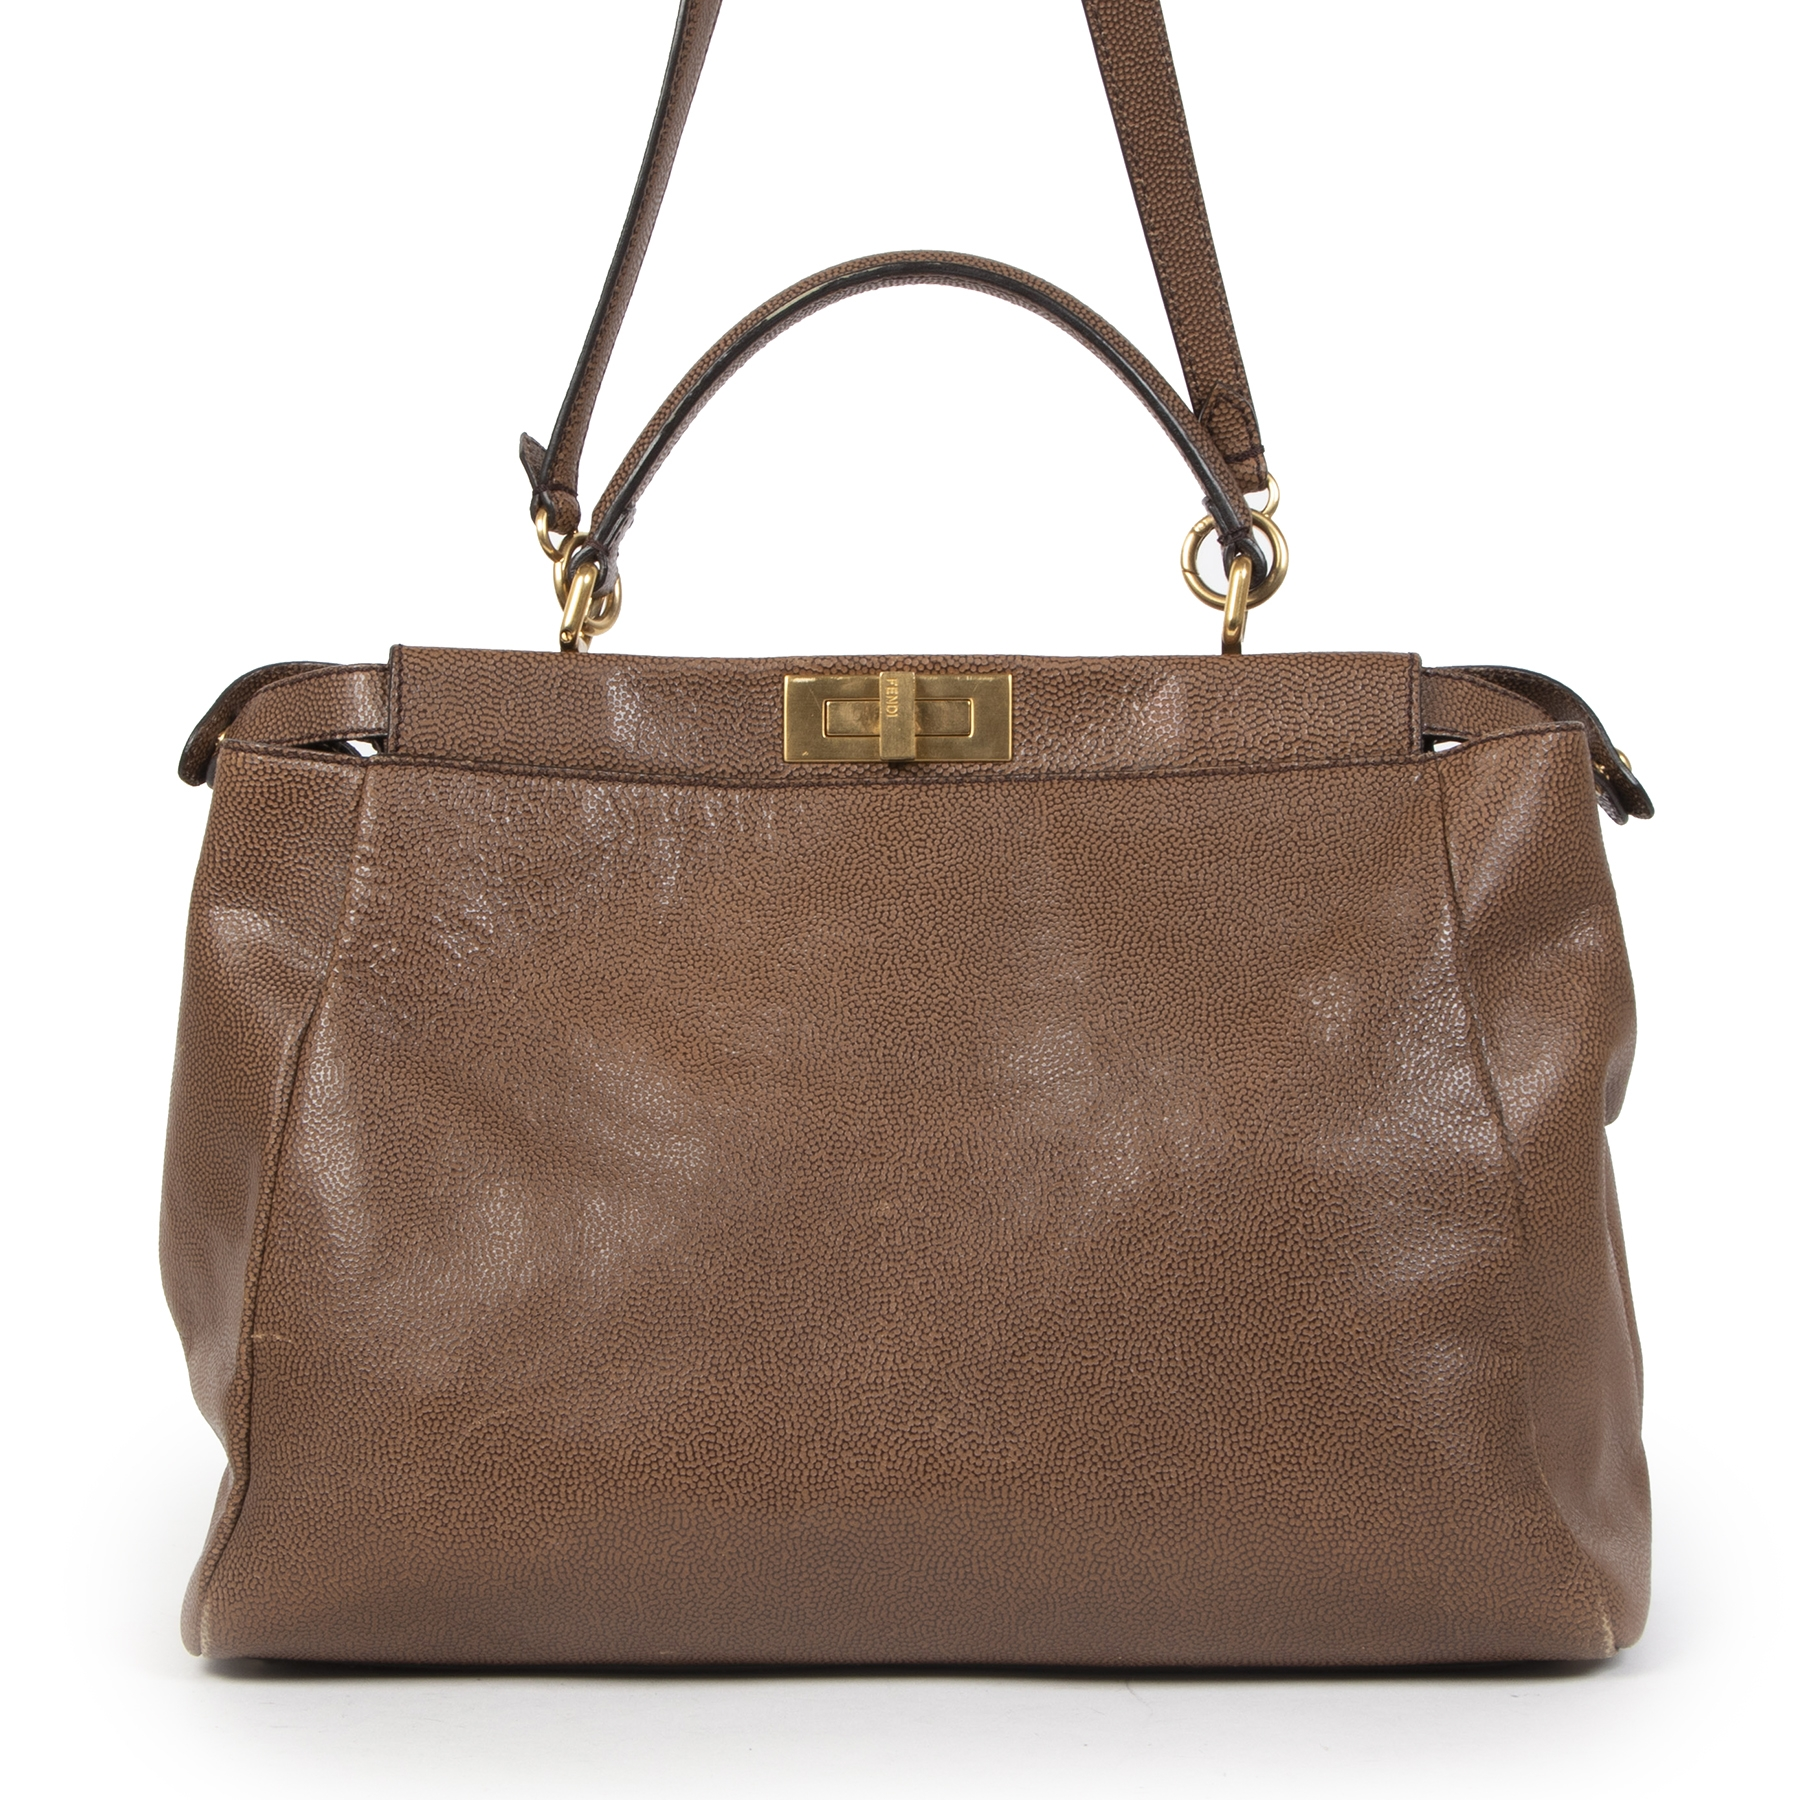 Fendi Peekaboo Large Pebbled and Patent Leather Bag